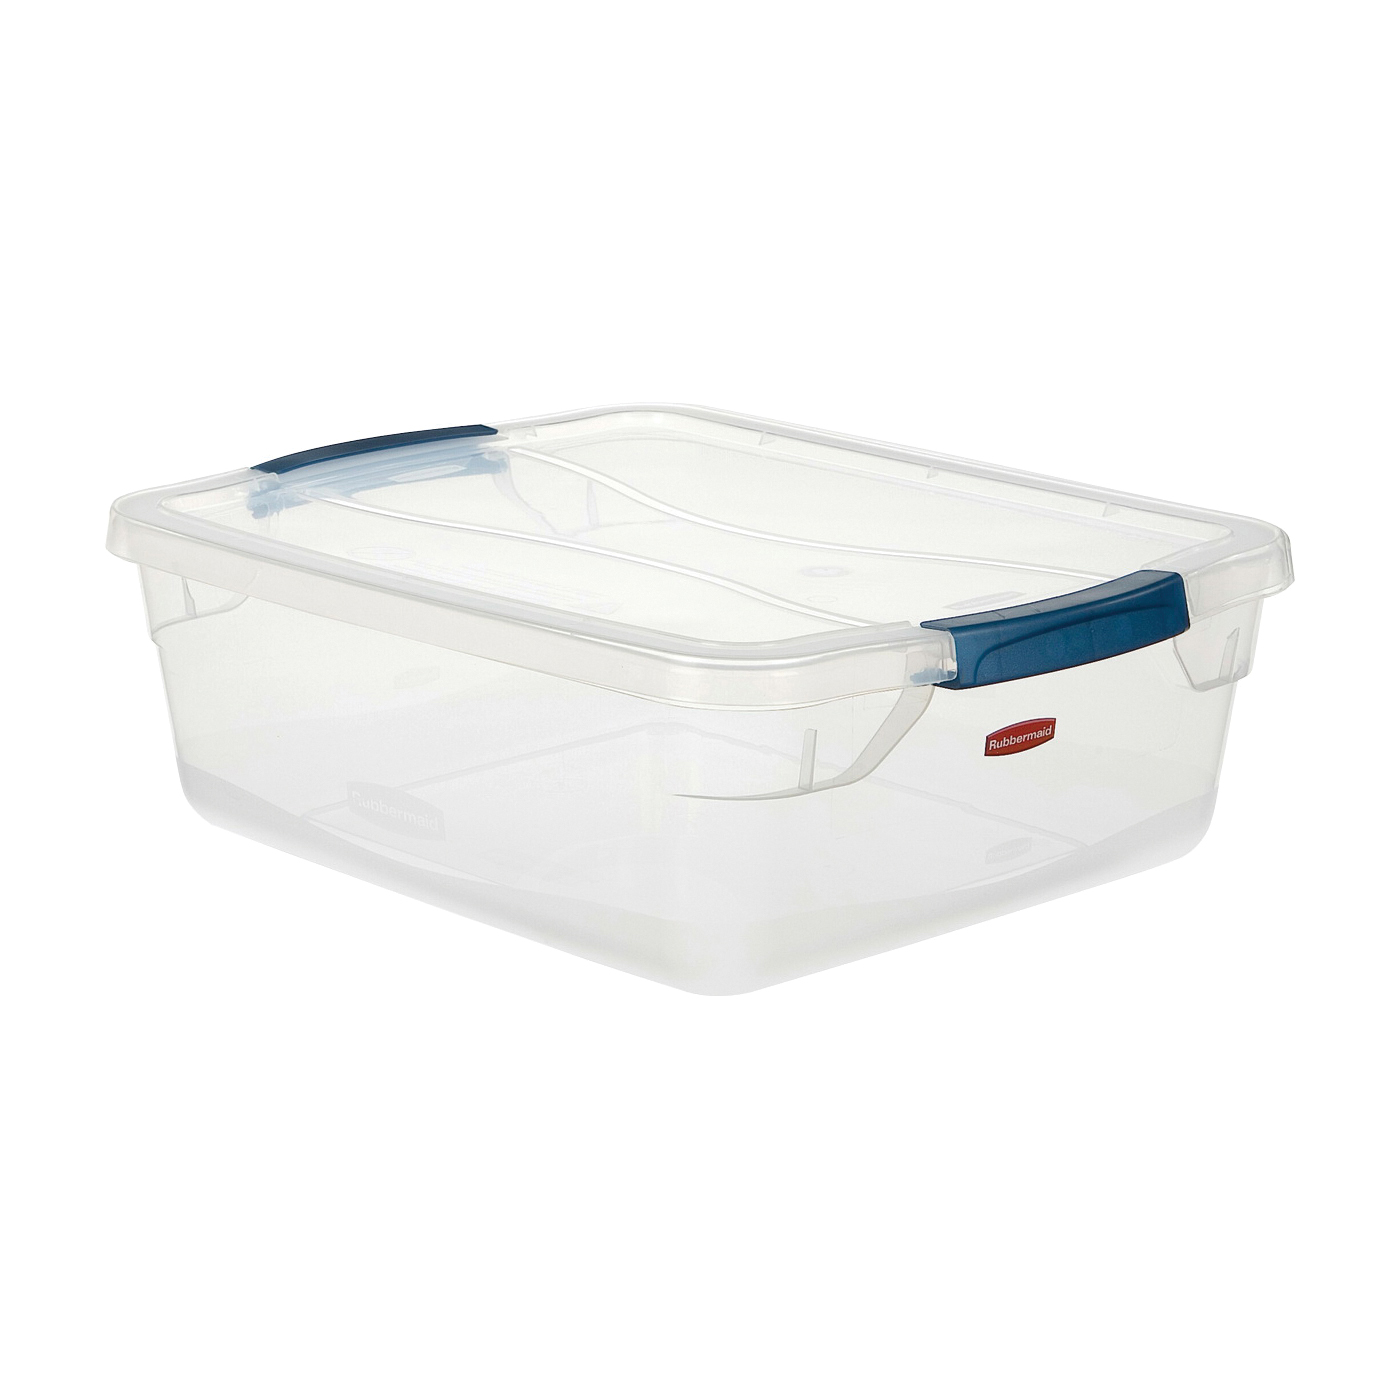 Picture of Rubbermaid Clever Store RMCC160000 Storage Container, Plastic, Clear, 16.8 in L, 13.3 in W, 5.3 in H